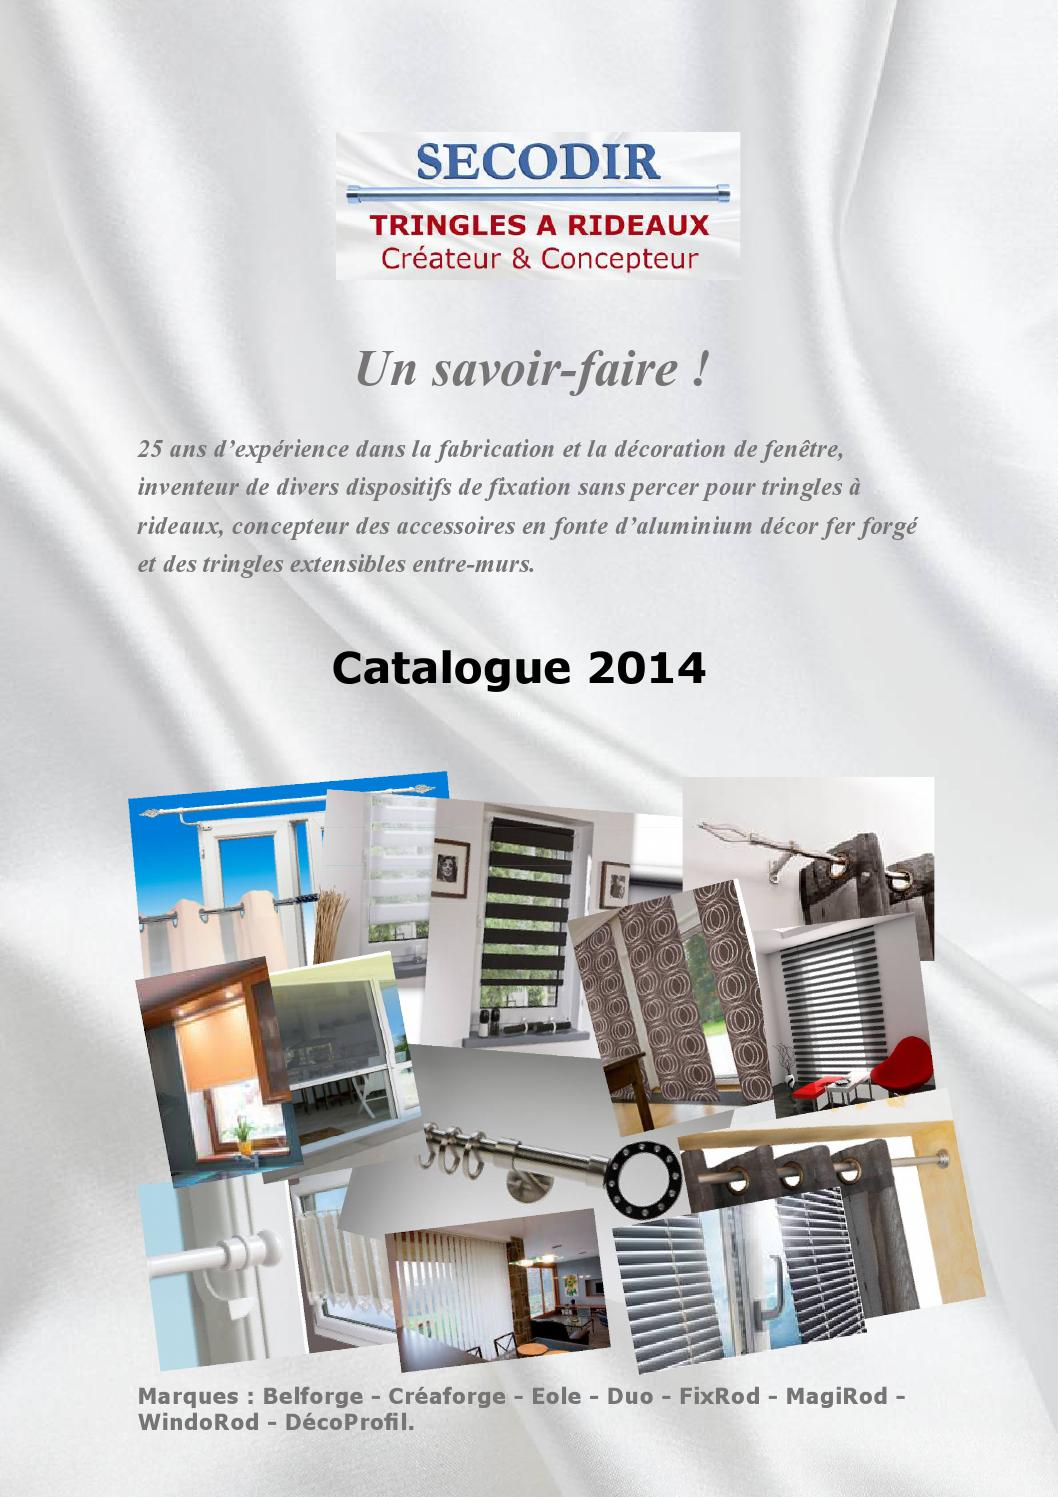 Tringle Voilage Sans Percer catalogue secodir v2 2014(1) (1)secodir sarl - issuu